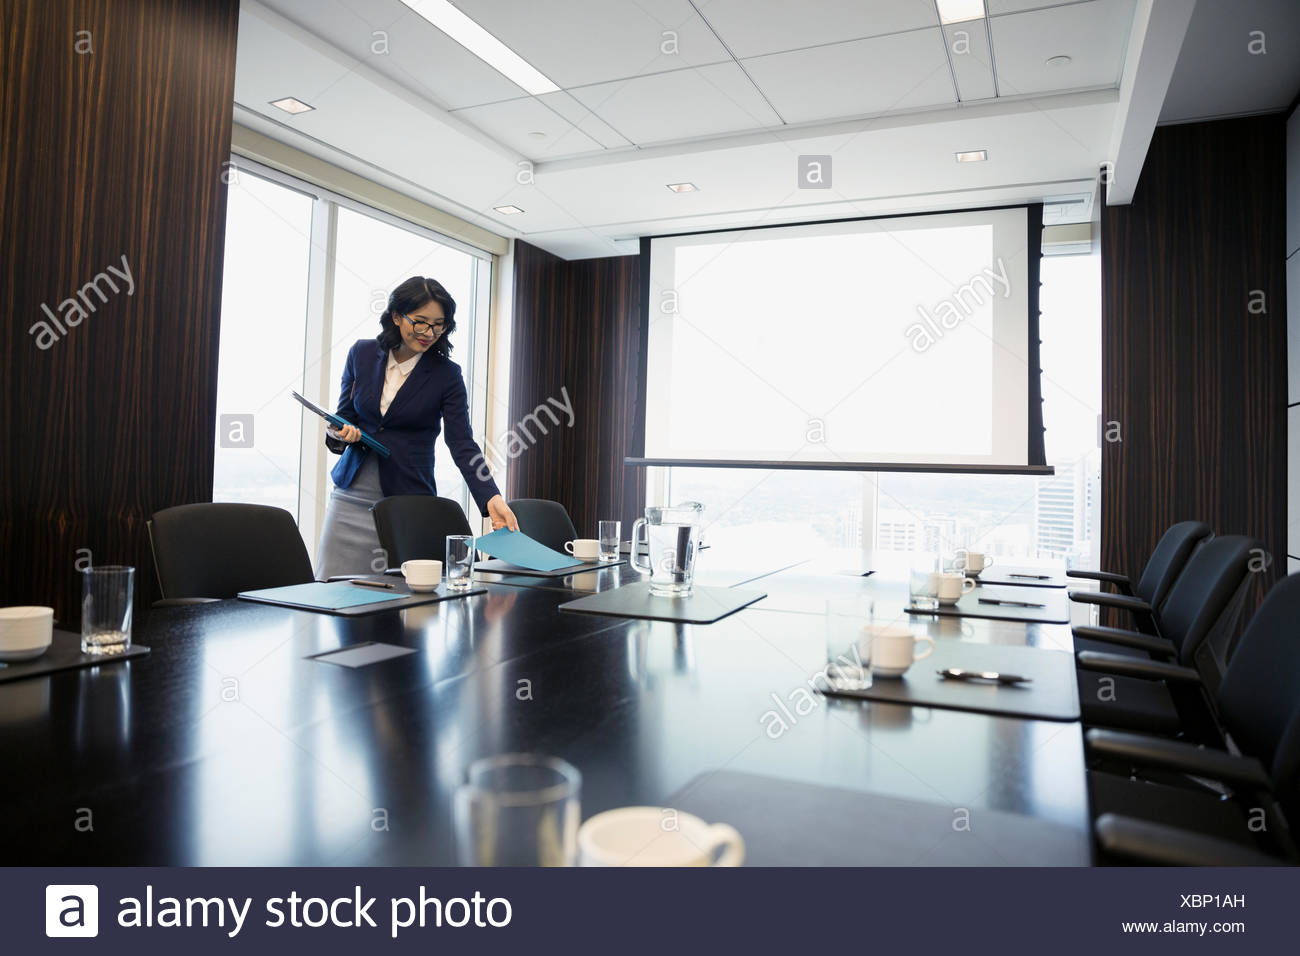 Businesswoman preparing for meeting placing folders on conference room table - Stock Image